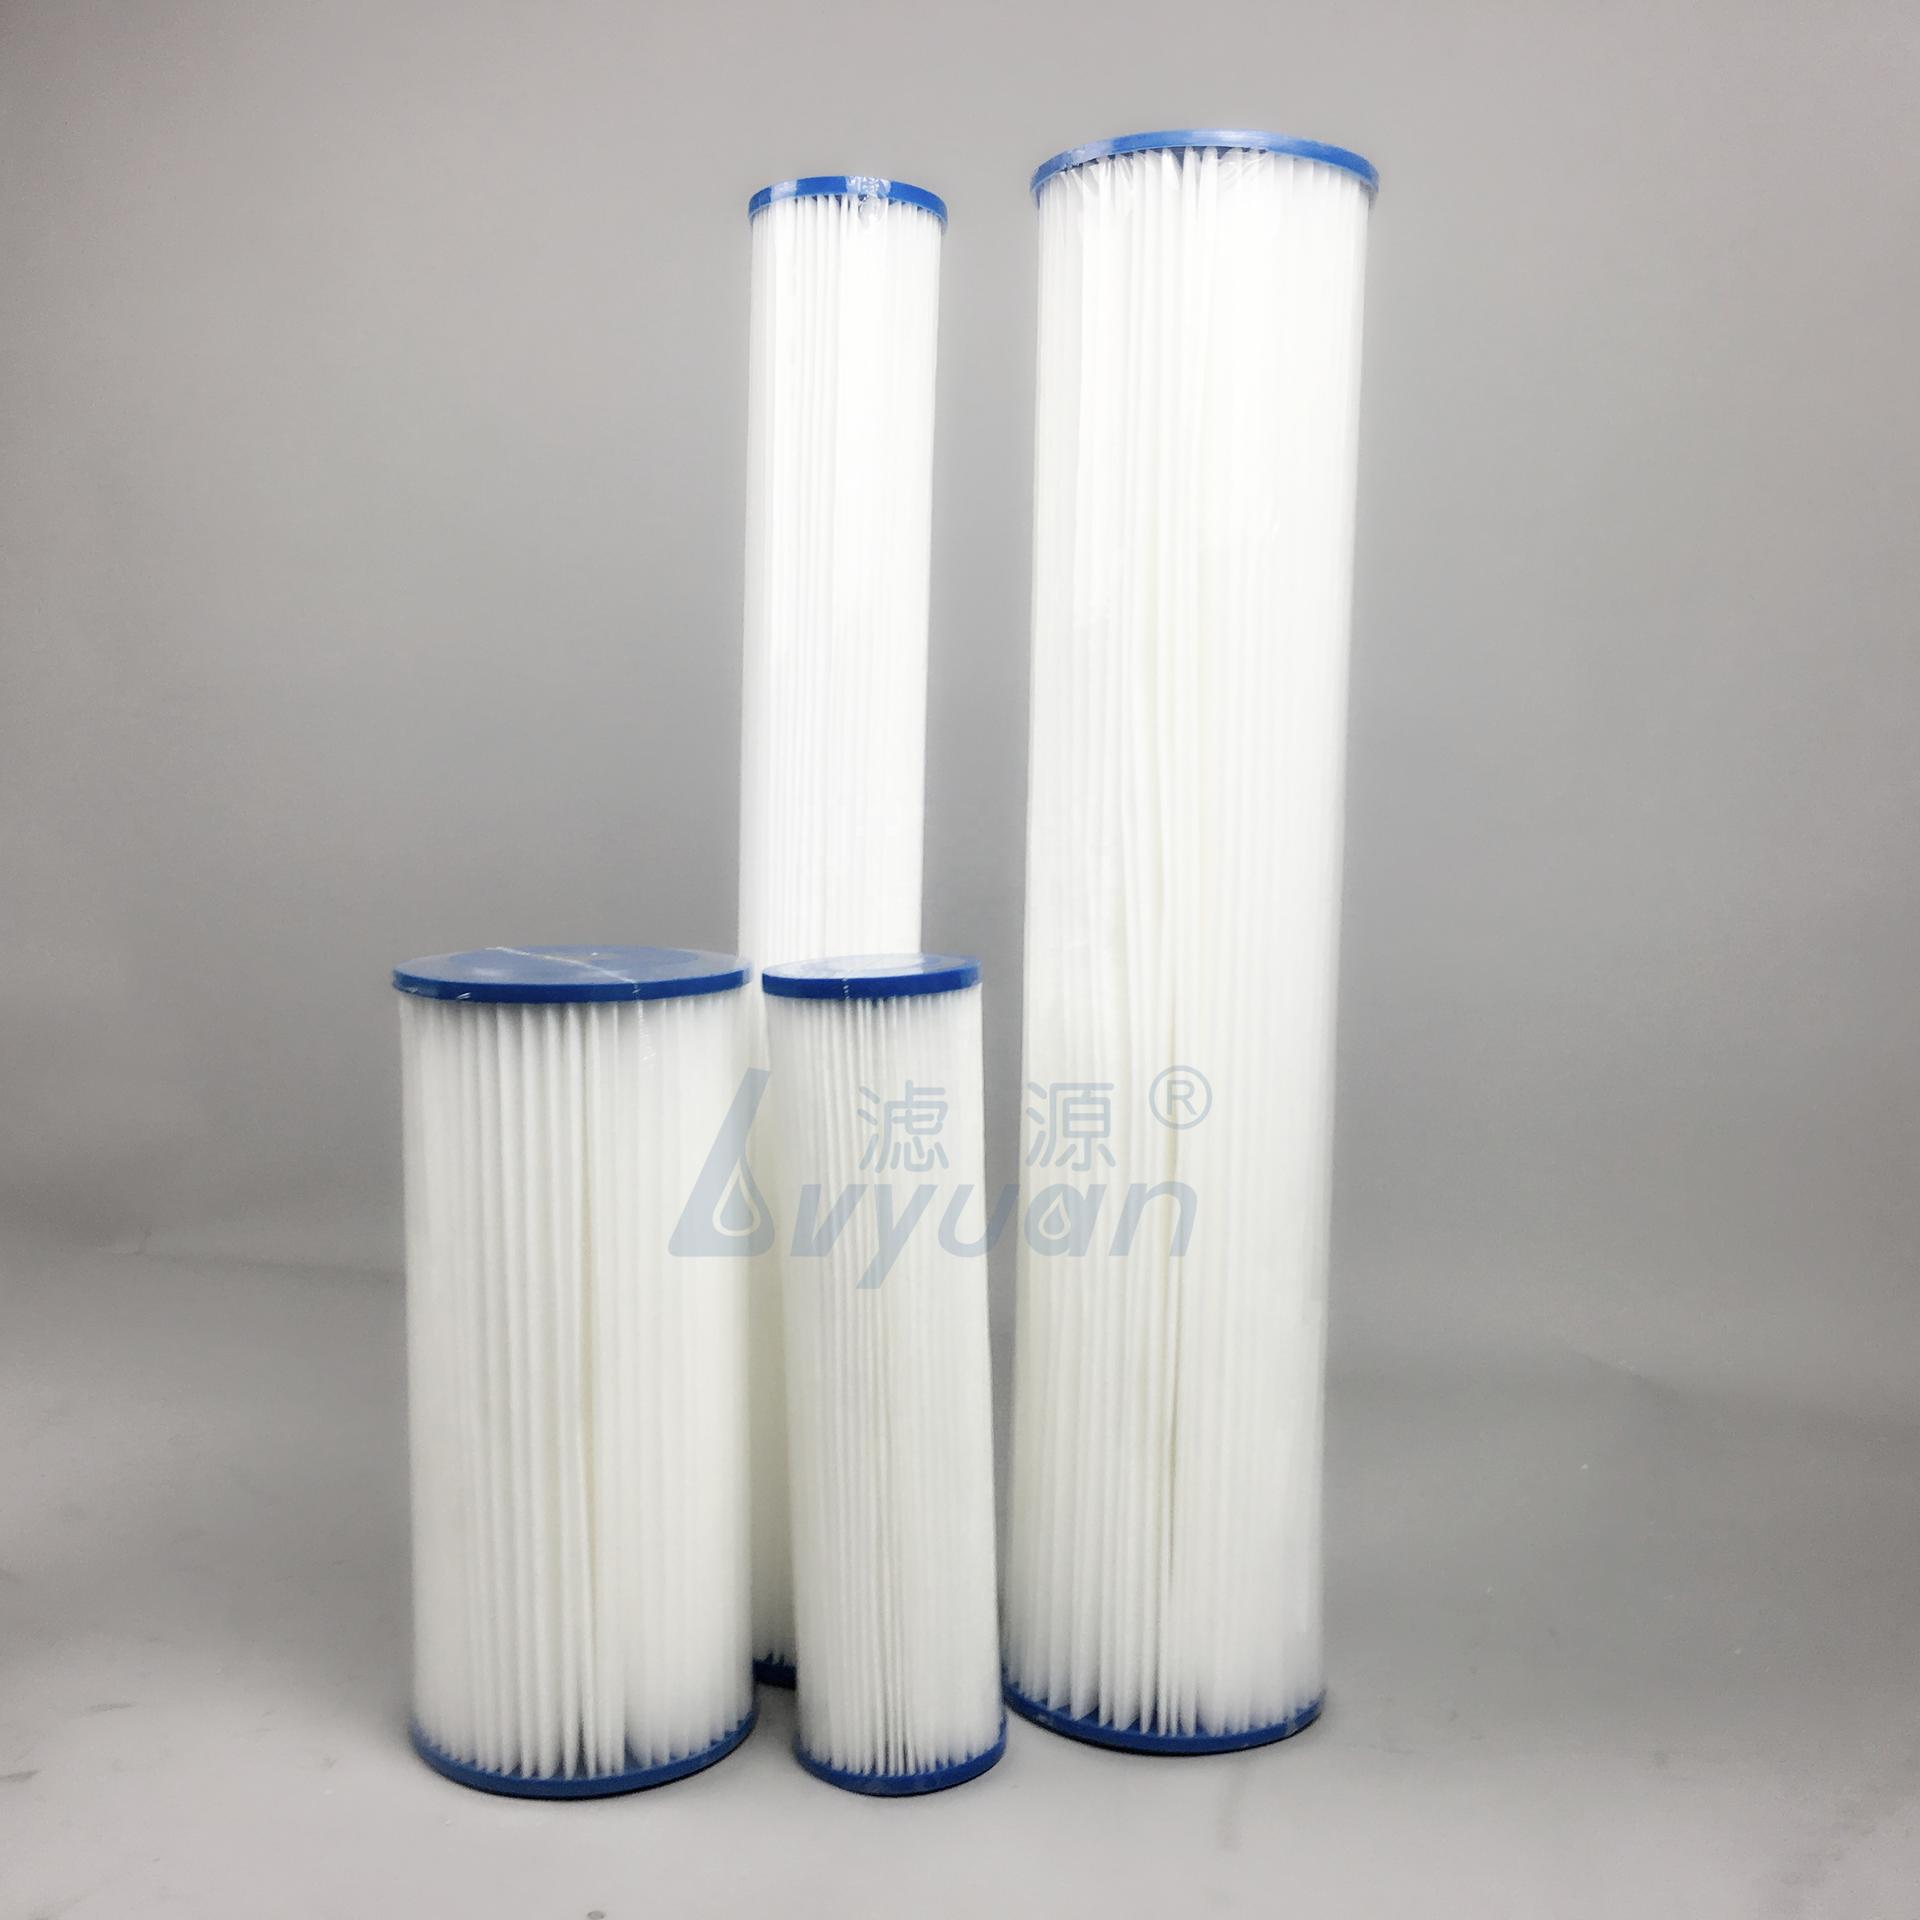 paper pleated water cartridge Pool/Spa replacement cartridge filter for swimming pool/hot tub spa filtration system